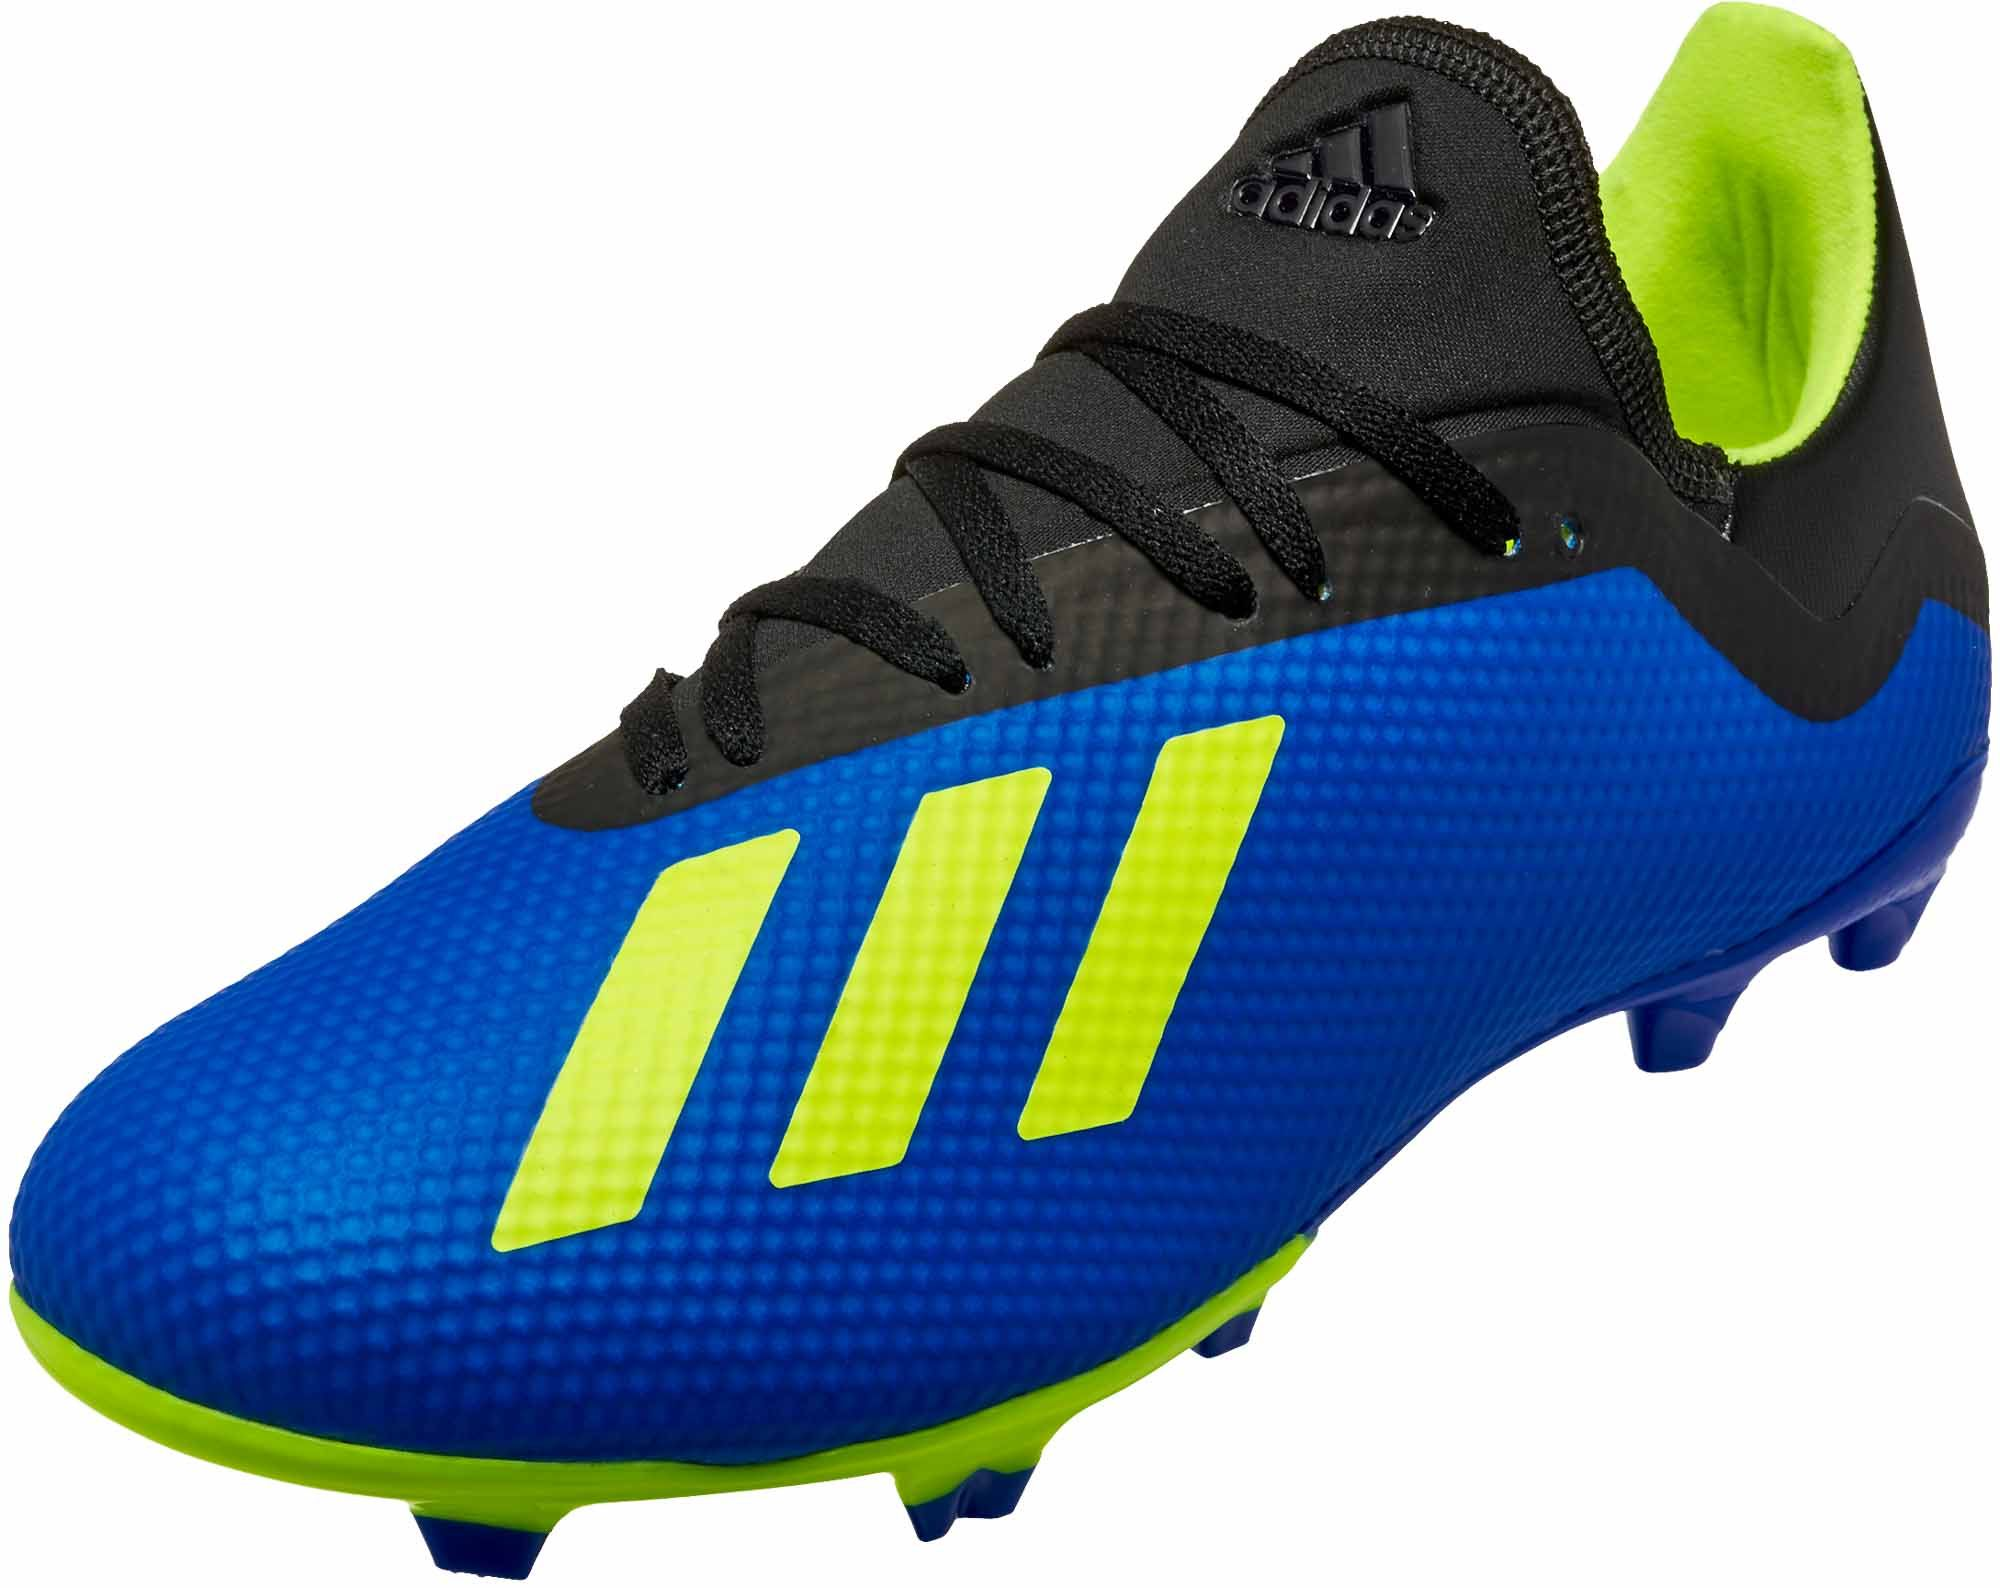 079c67bd89cda3 adidas X 18.3 FG – Football Blue/Solar Yellow/Black | adidas X ...